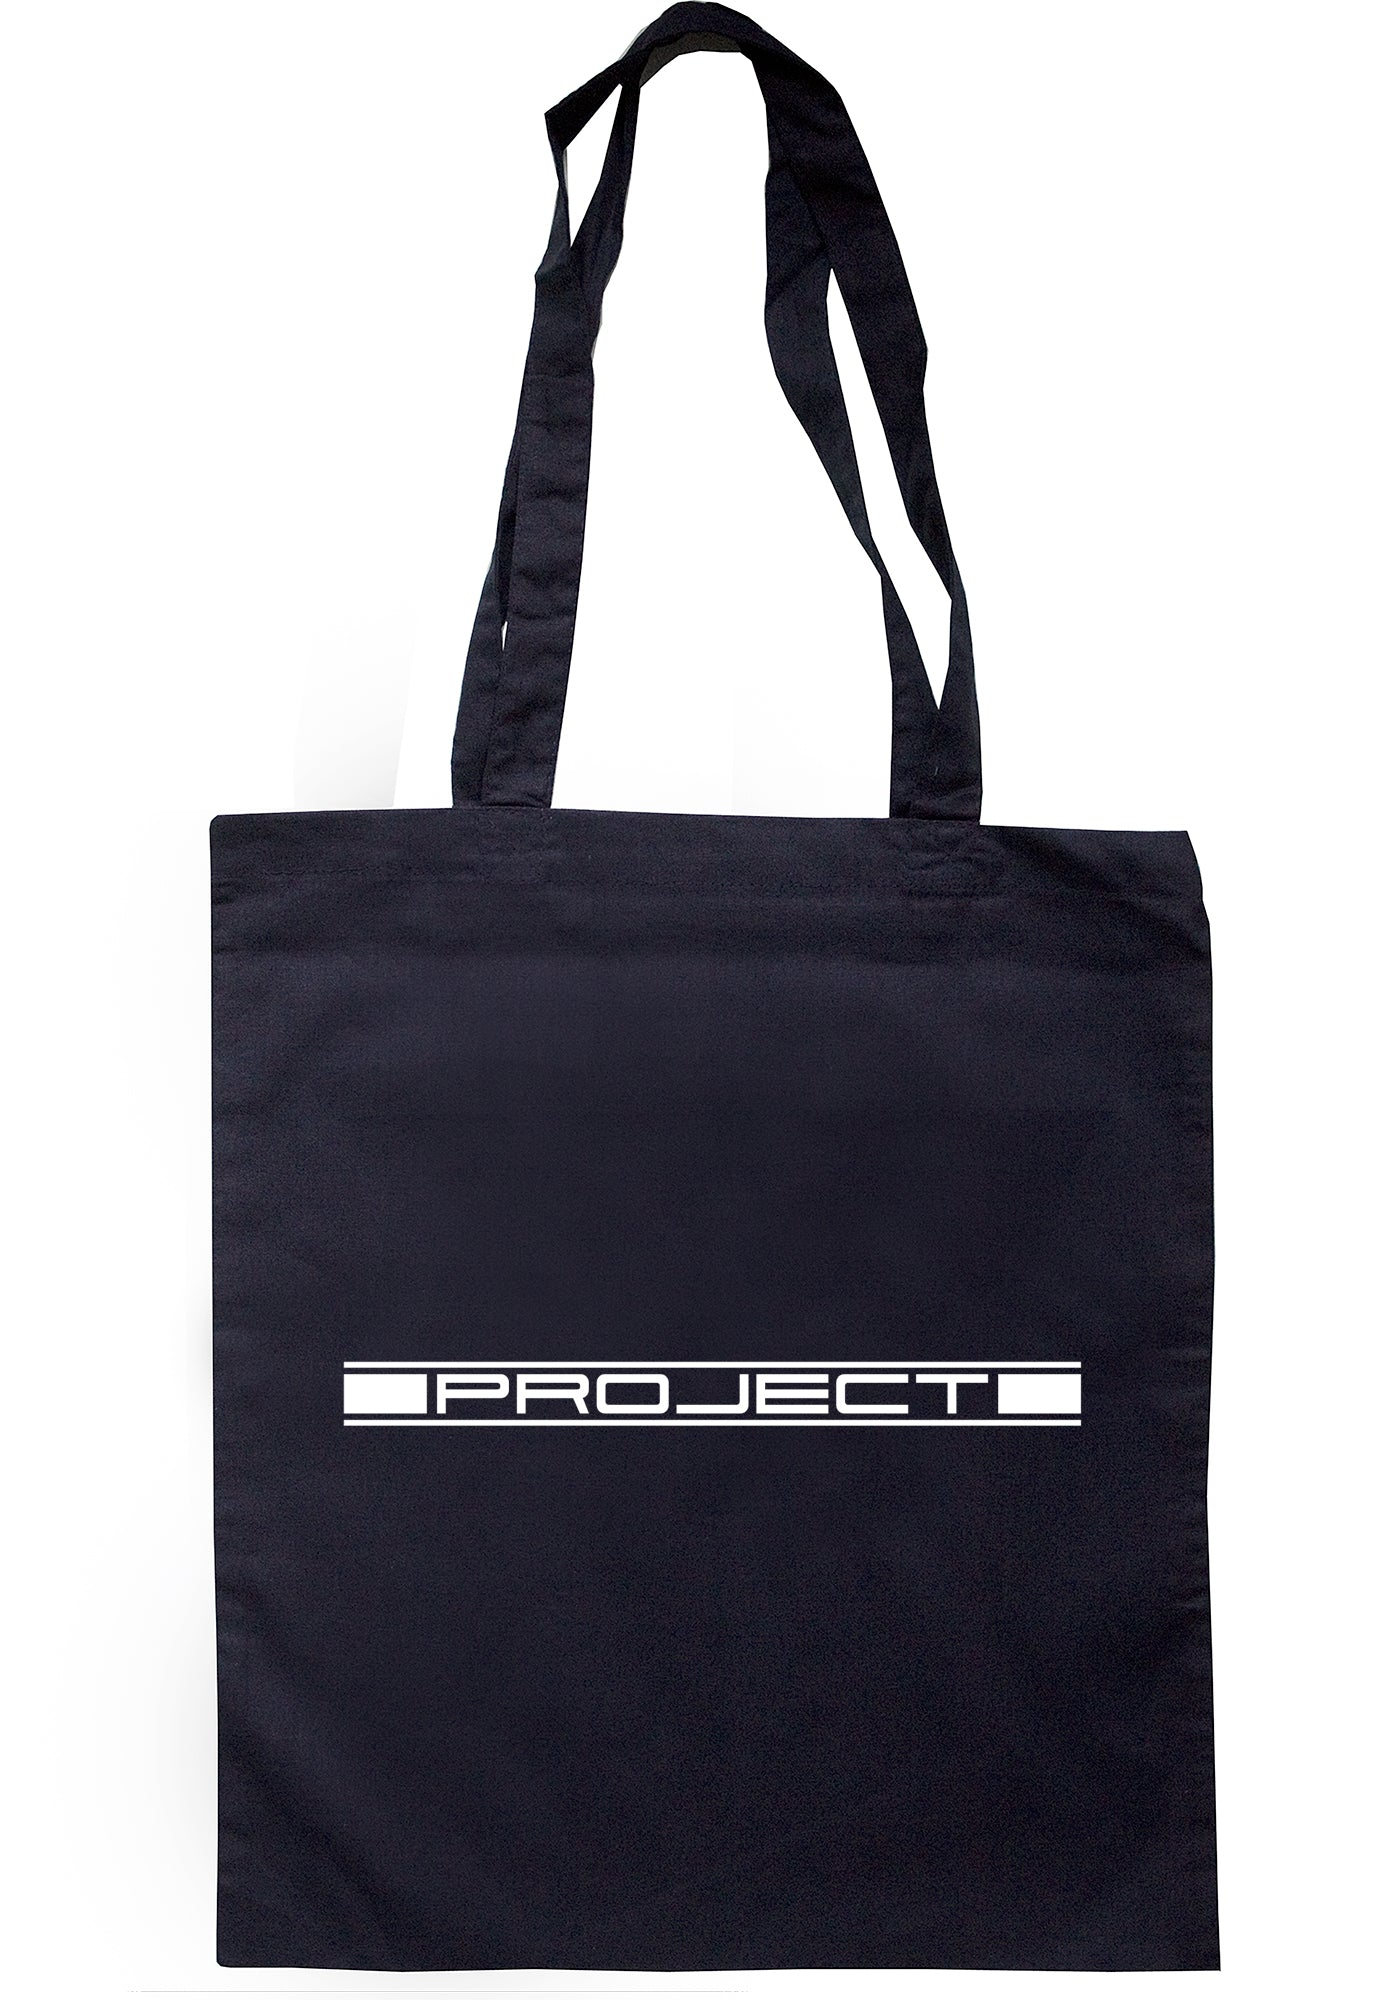 Project Tote Bag A0082